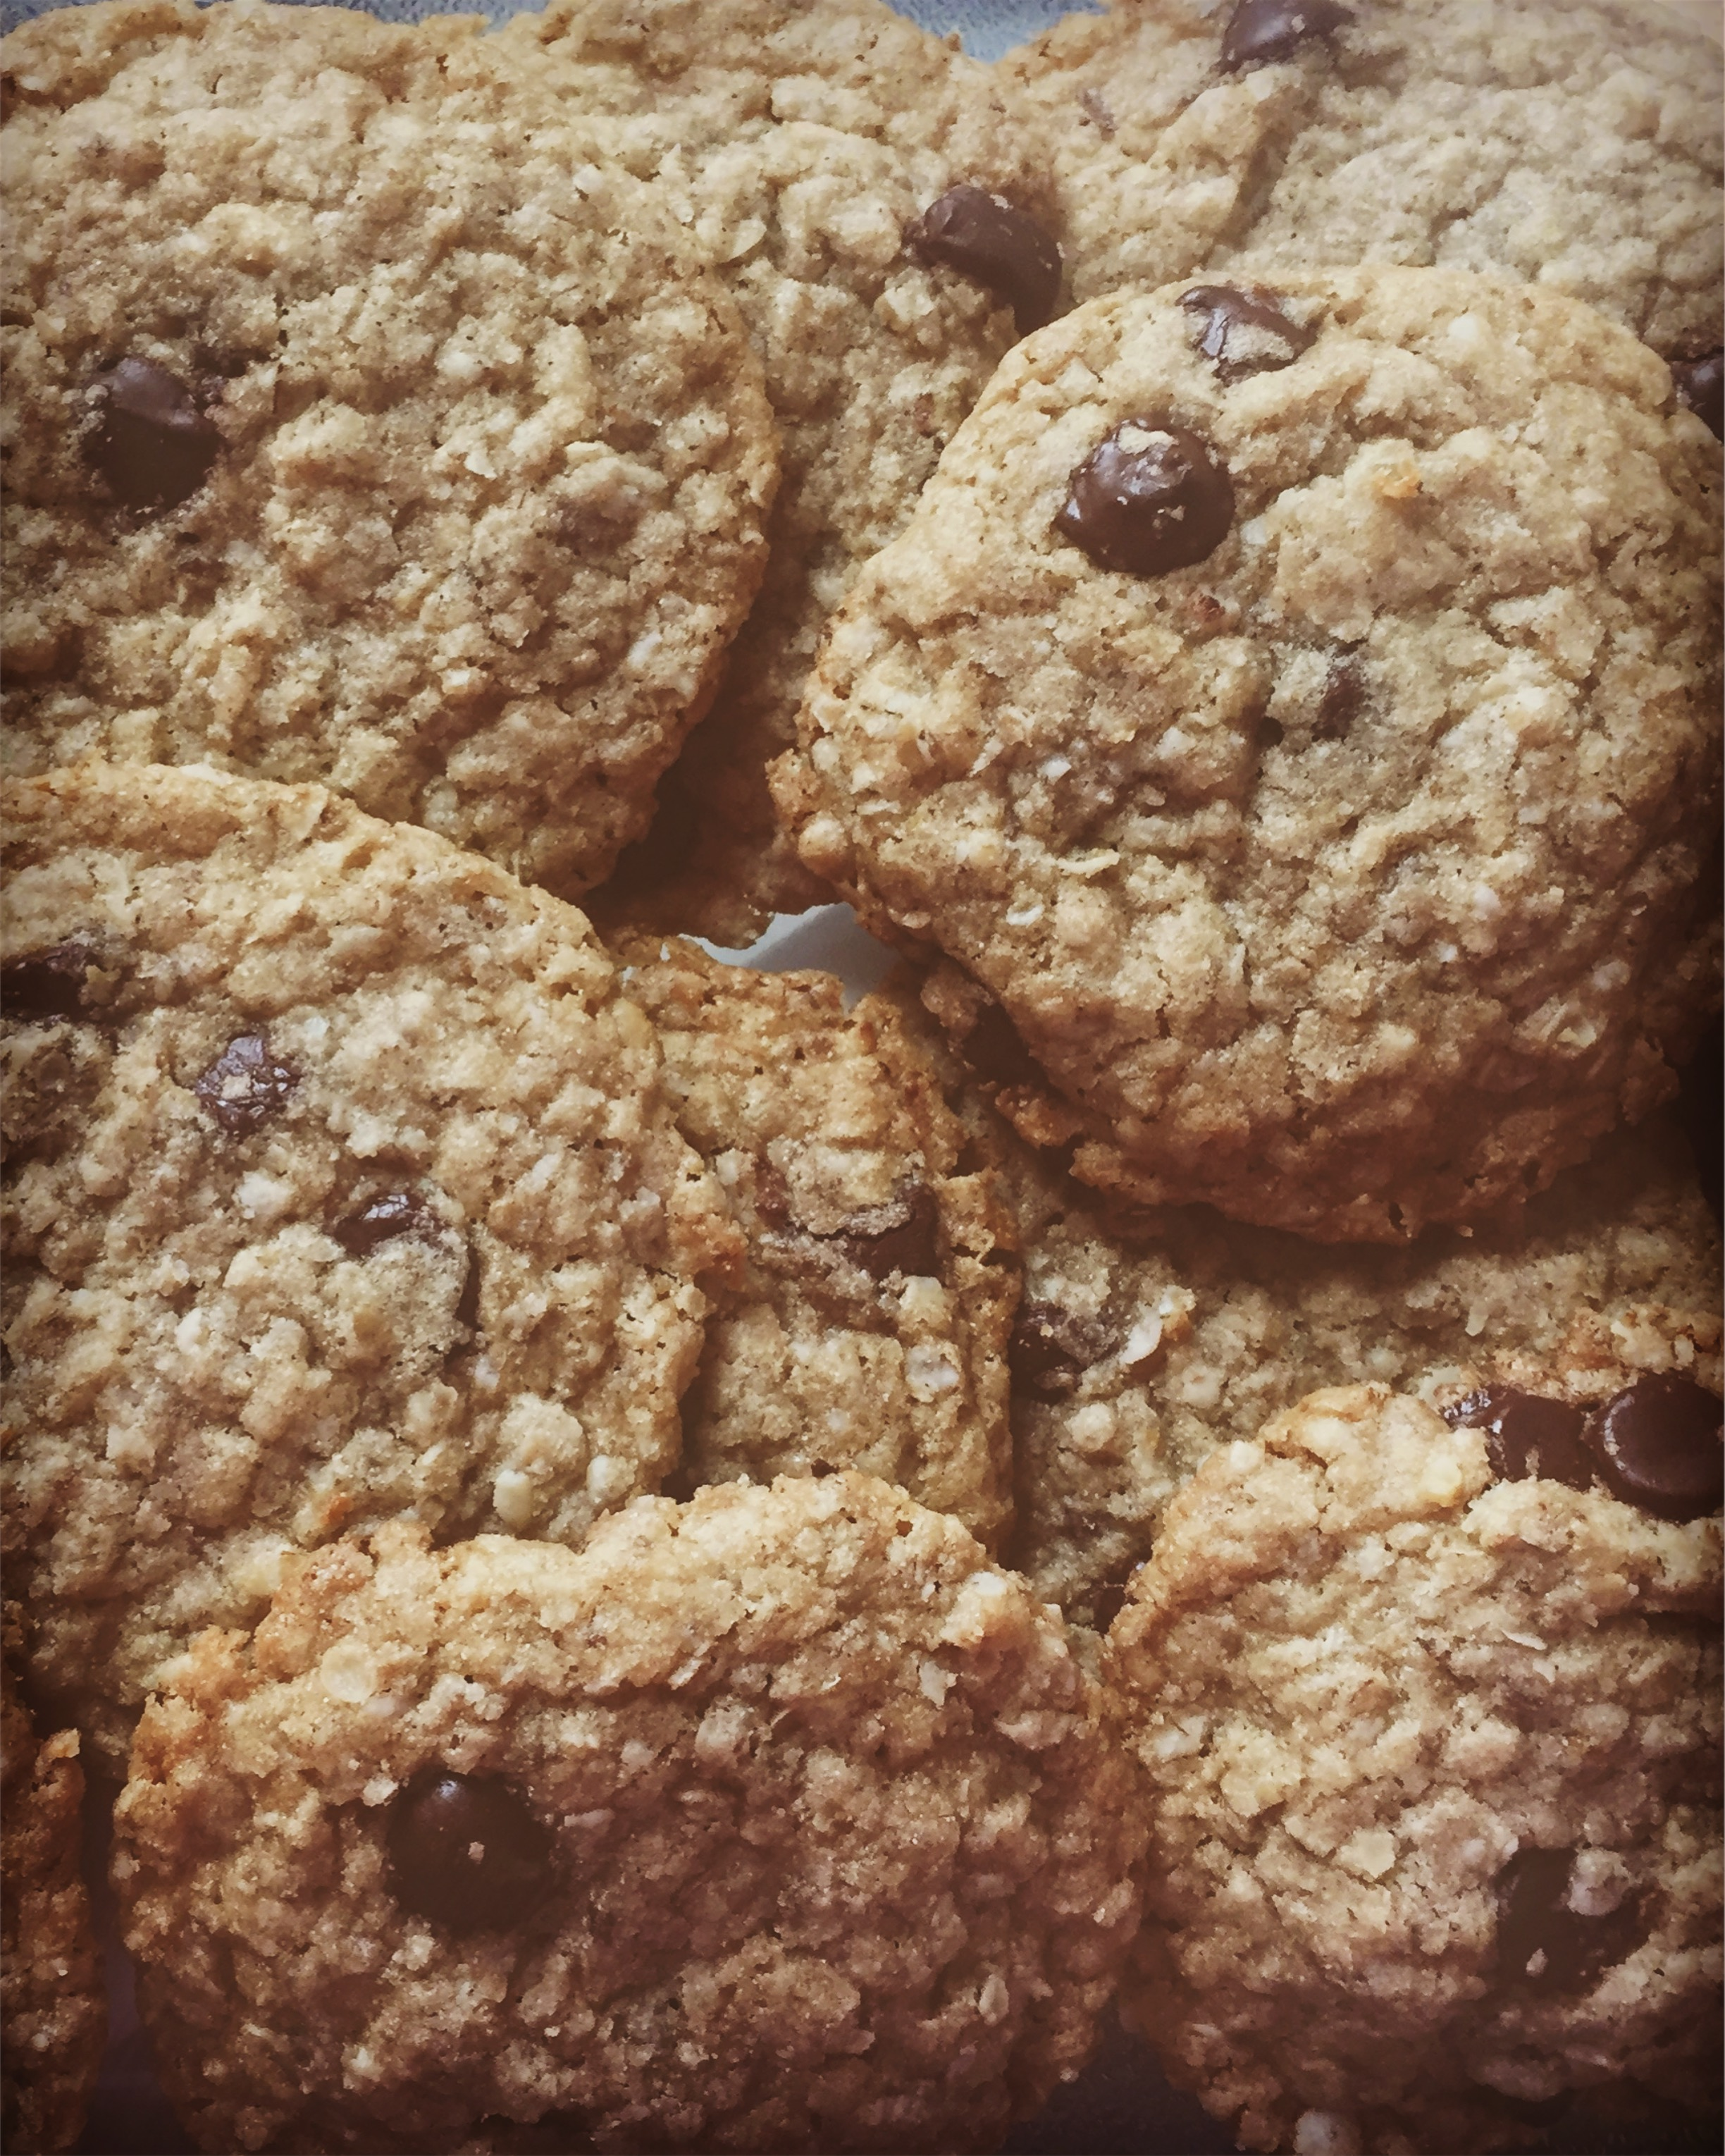 So chewy and delicious, you won't even know they are gluten-free!